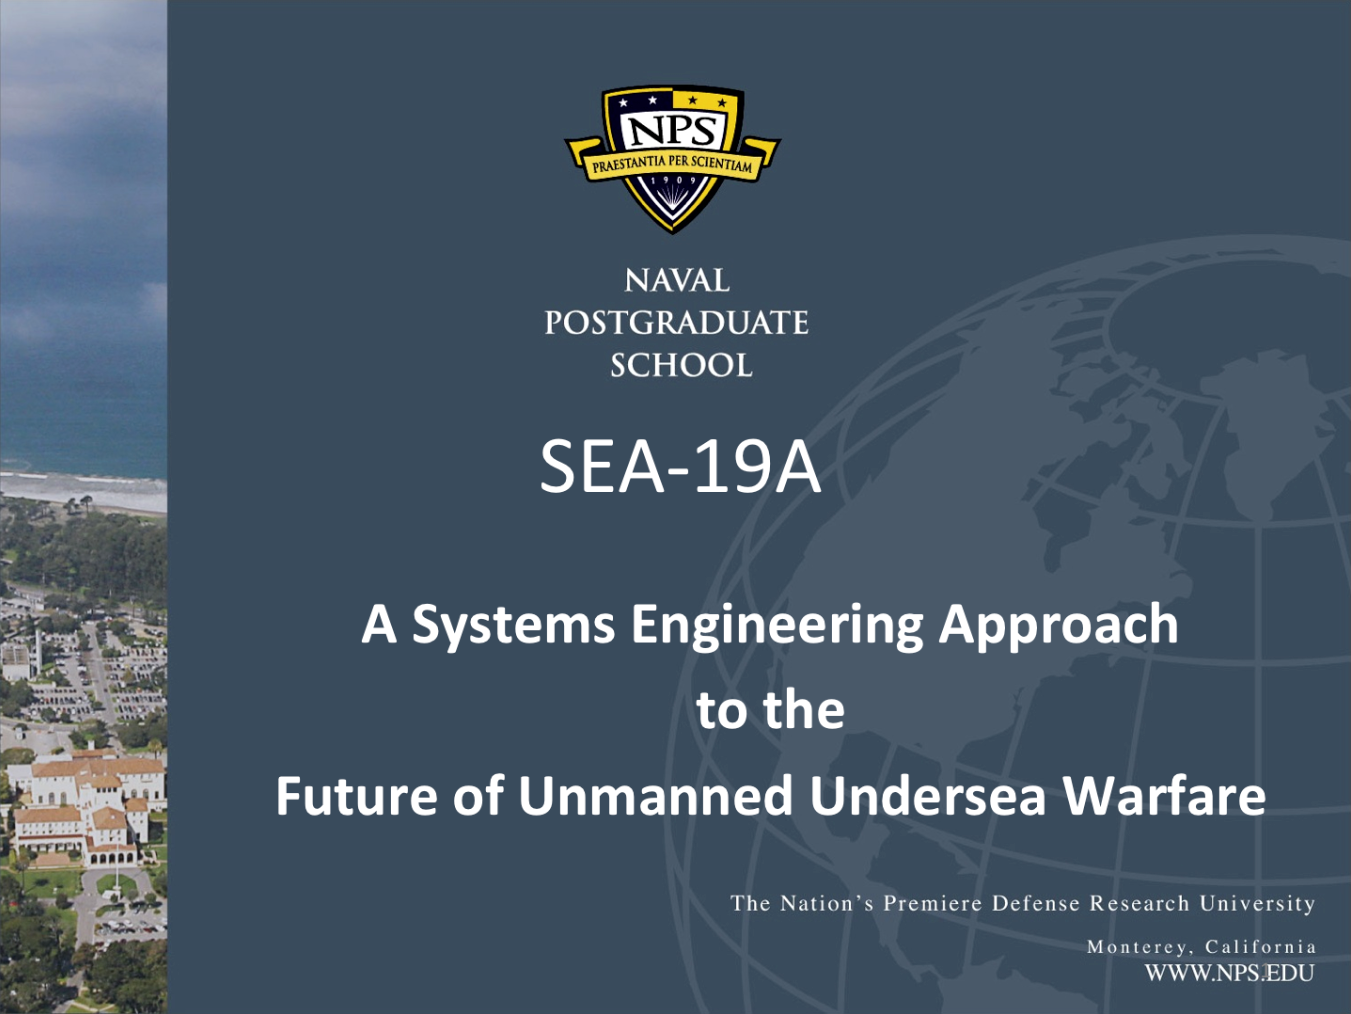 A Systems Engineering Approach to the Future of Unmanned Undersea Warfare Part 2